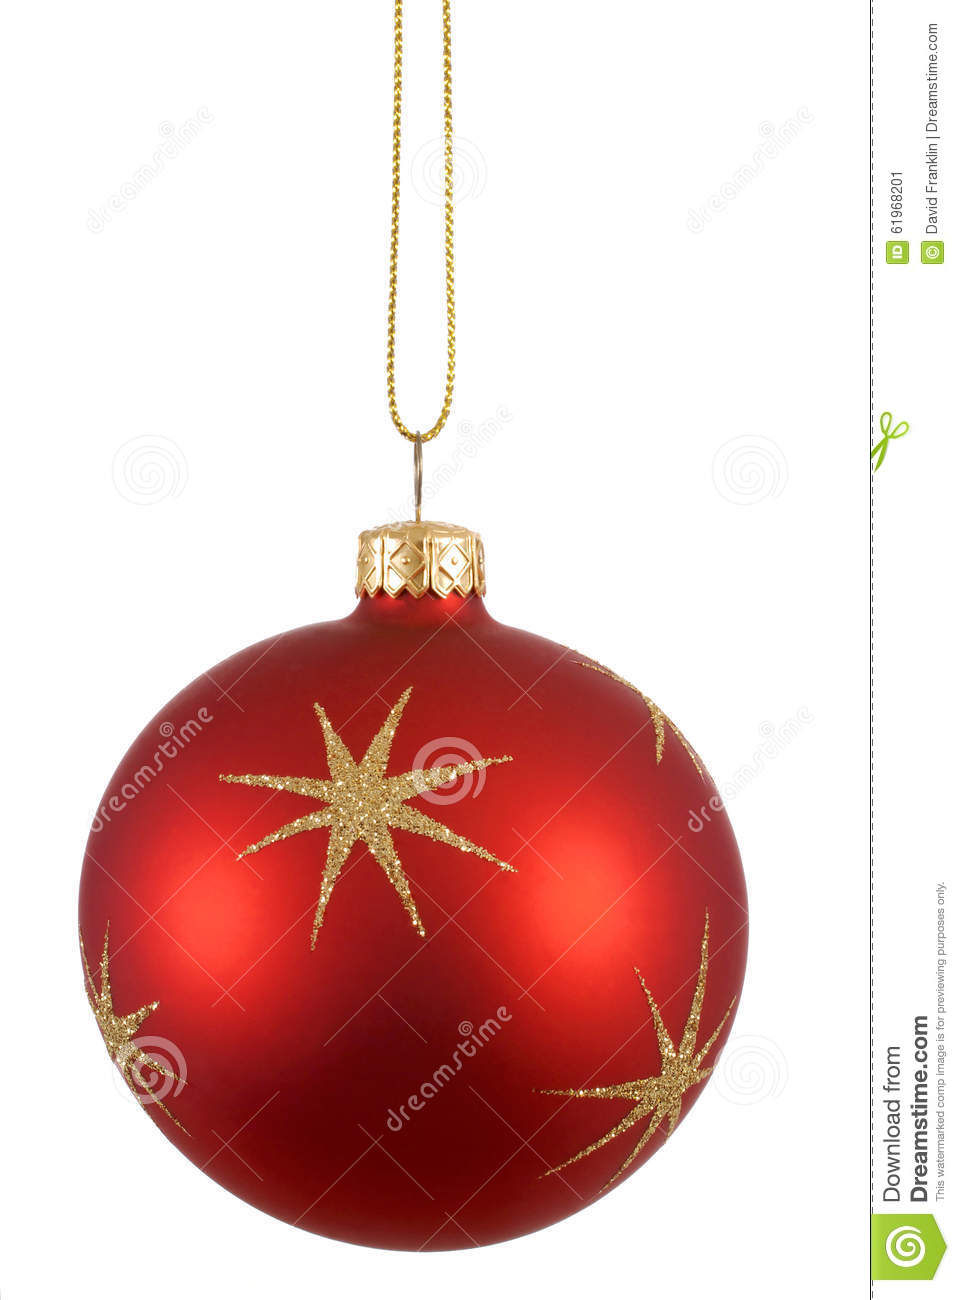 Red christmas tree ball or bauble with gold stars pattern isolated on white background